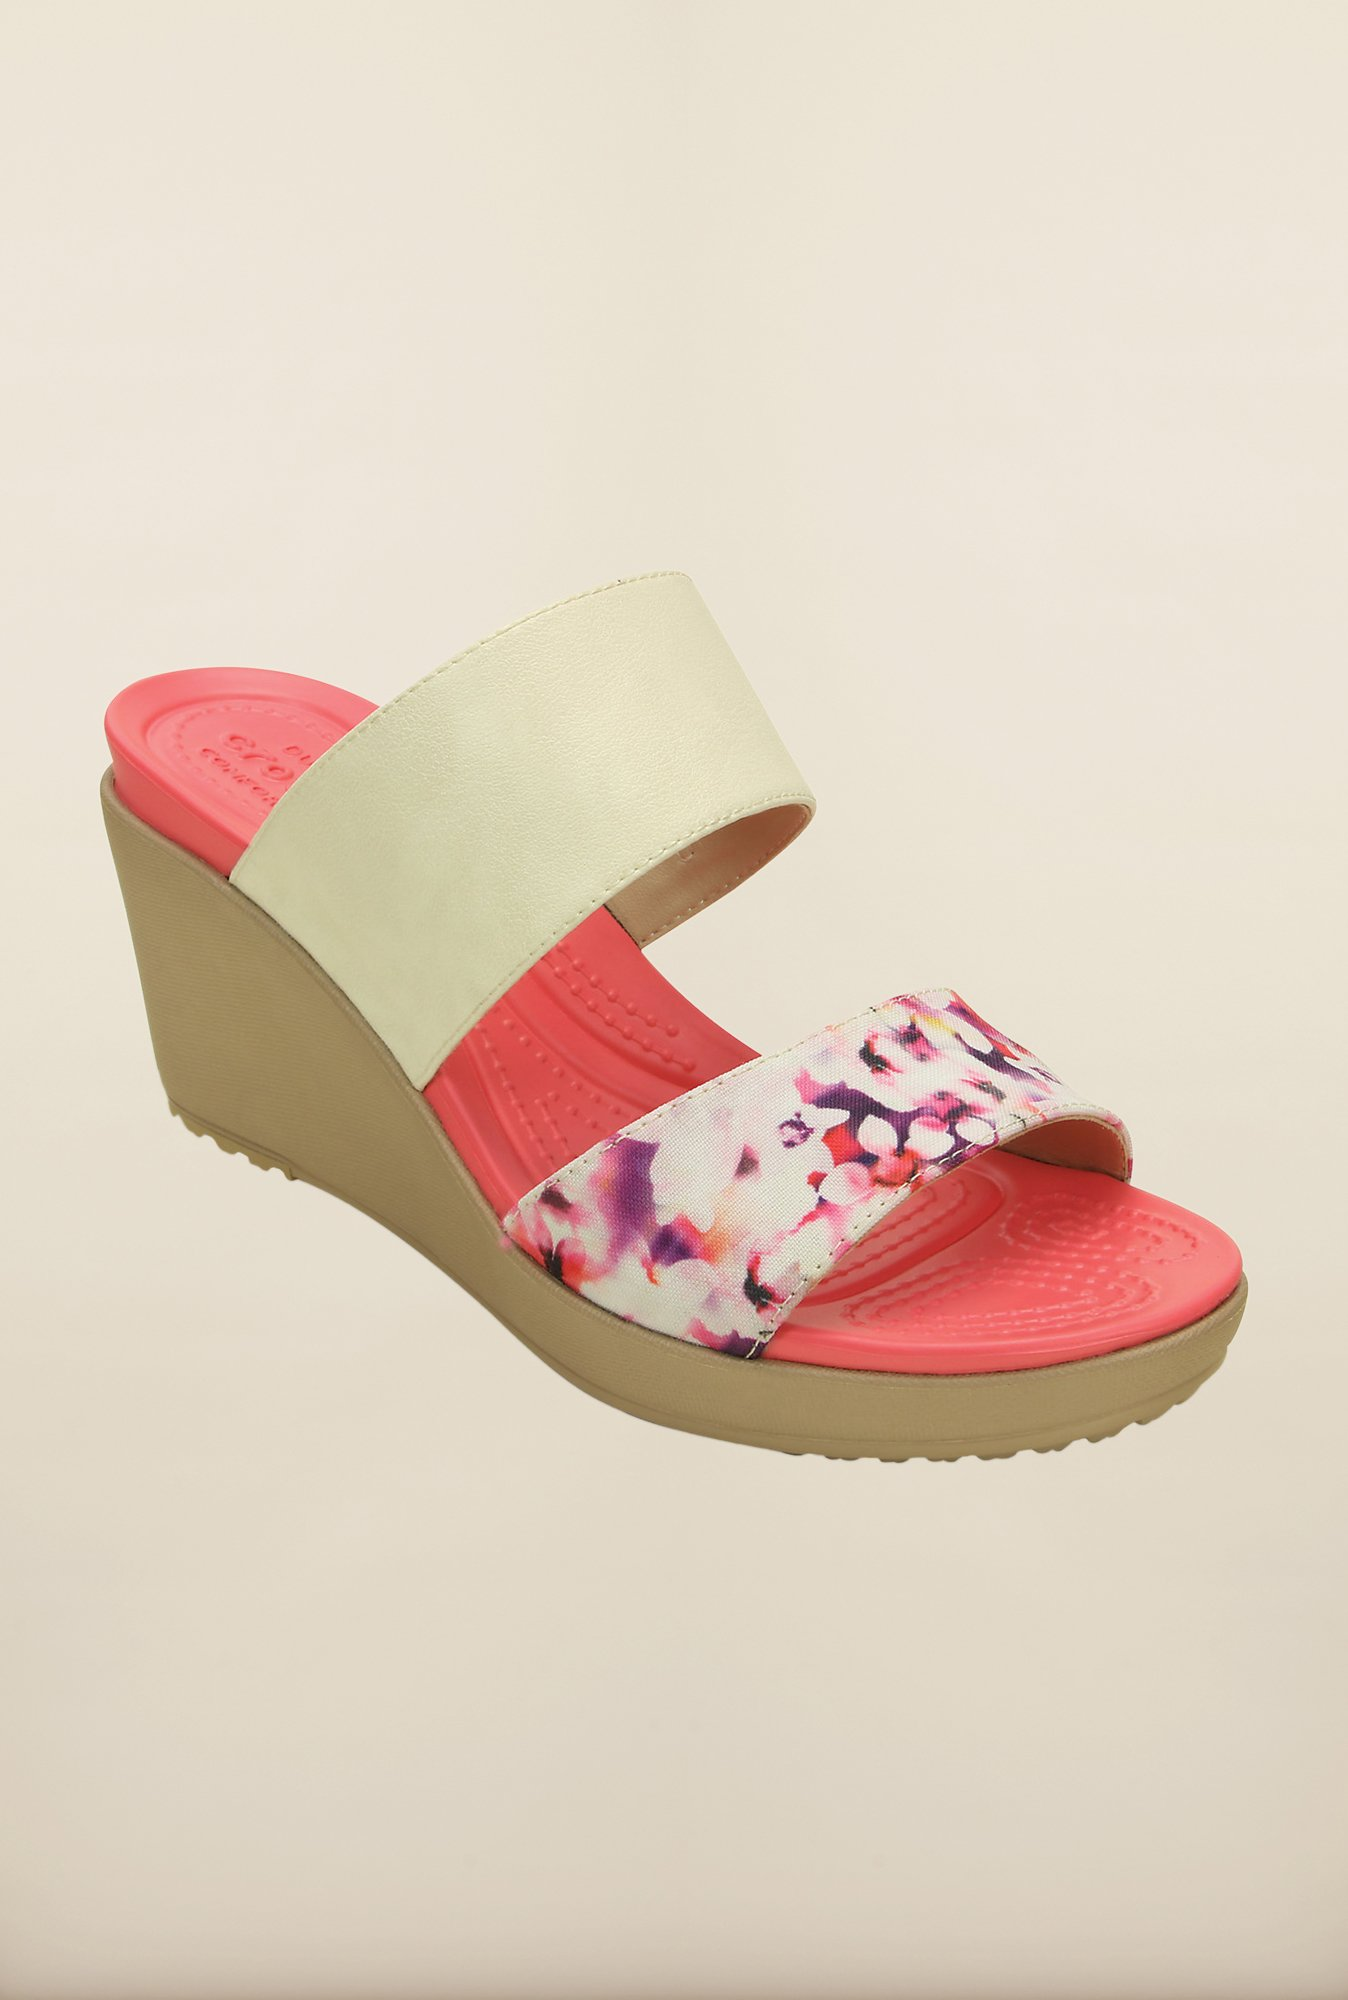 Crocs Leigh II Multicolor Wedges